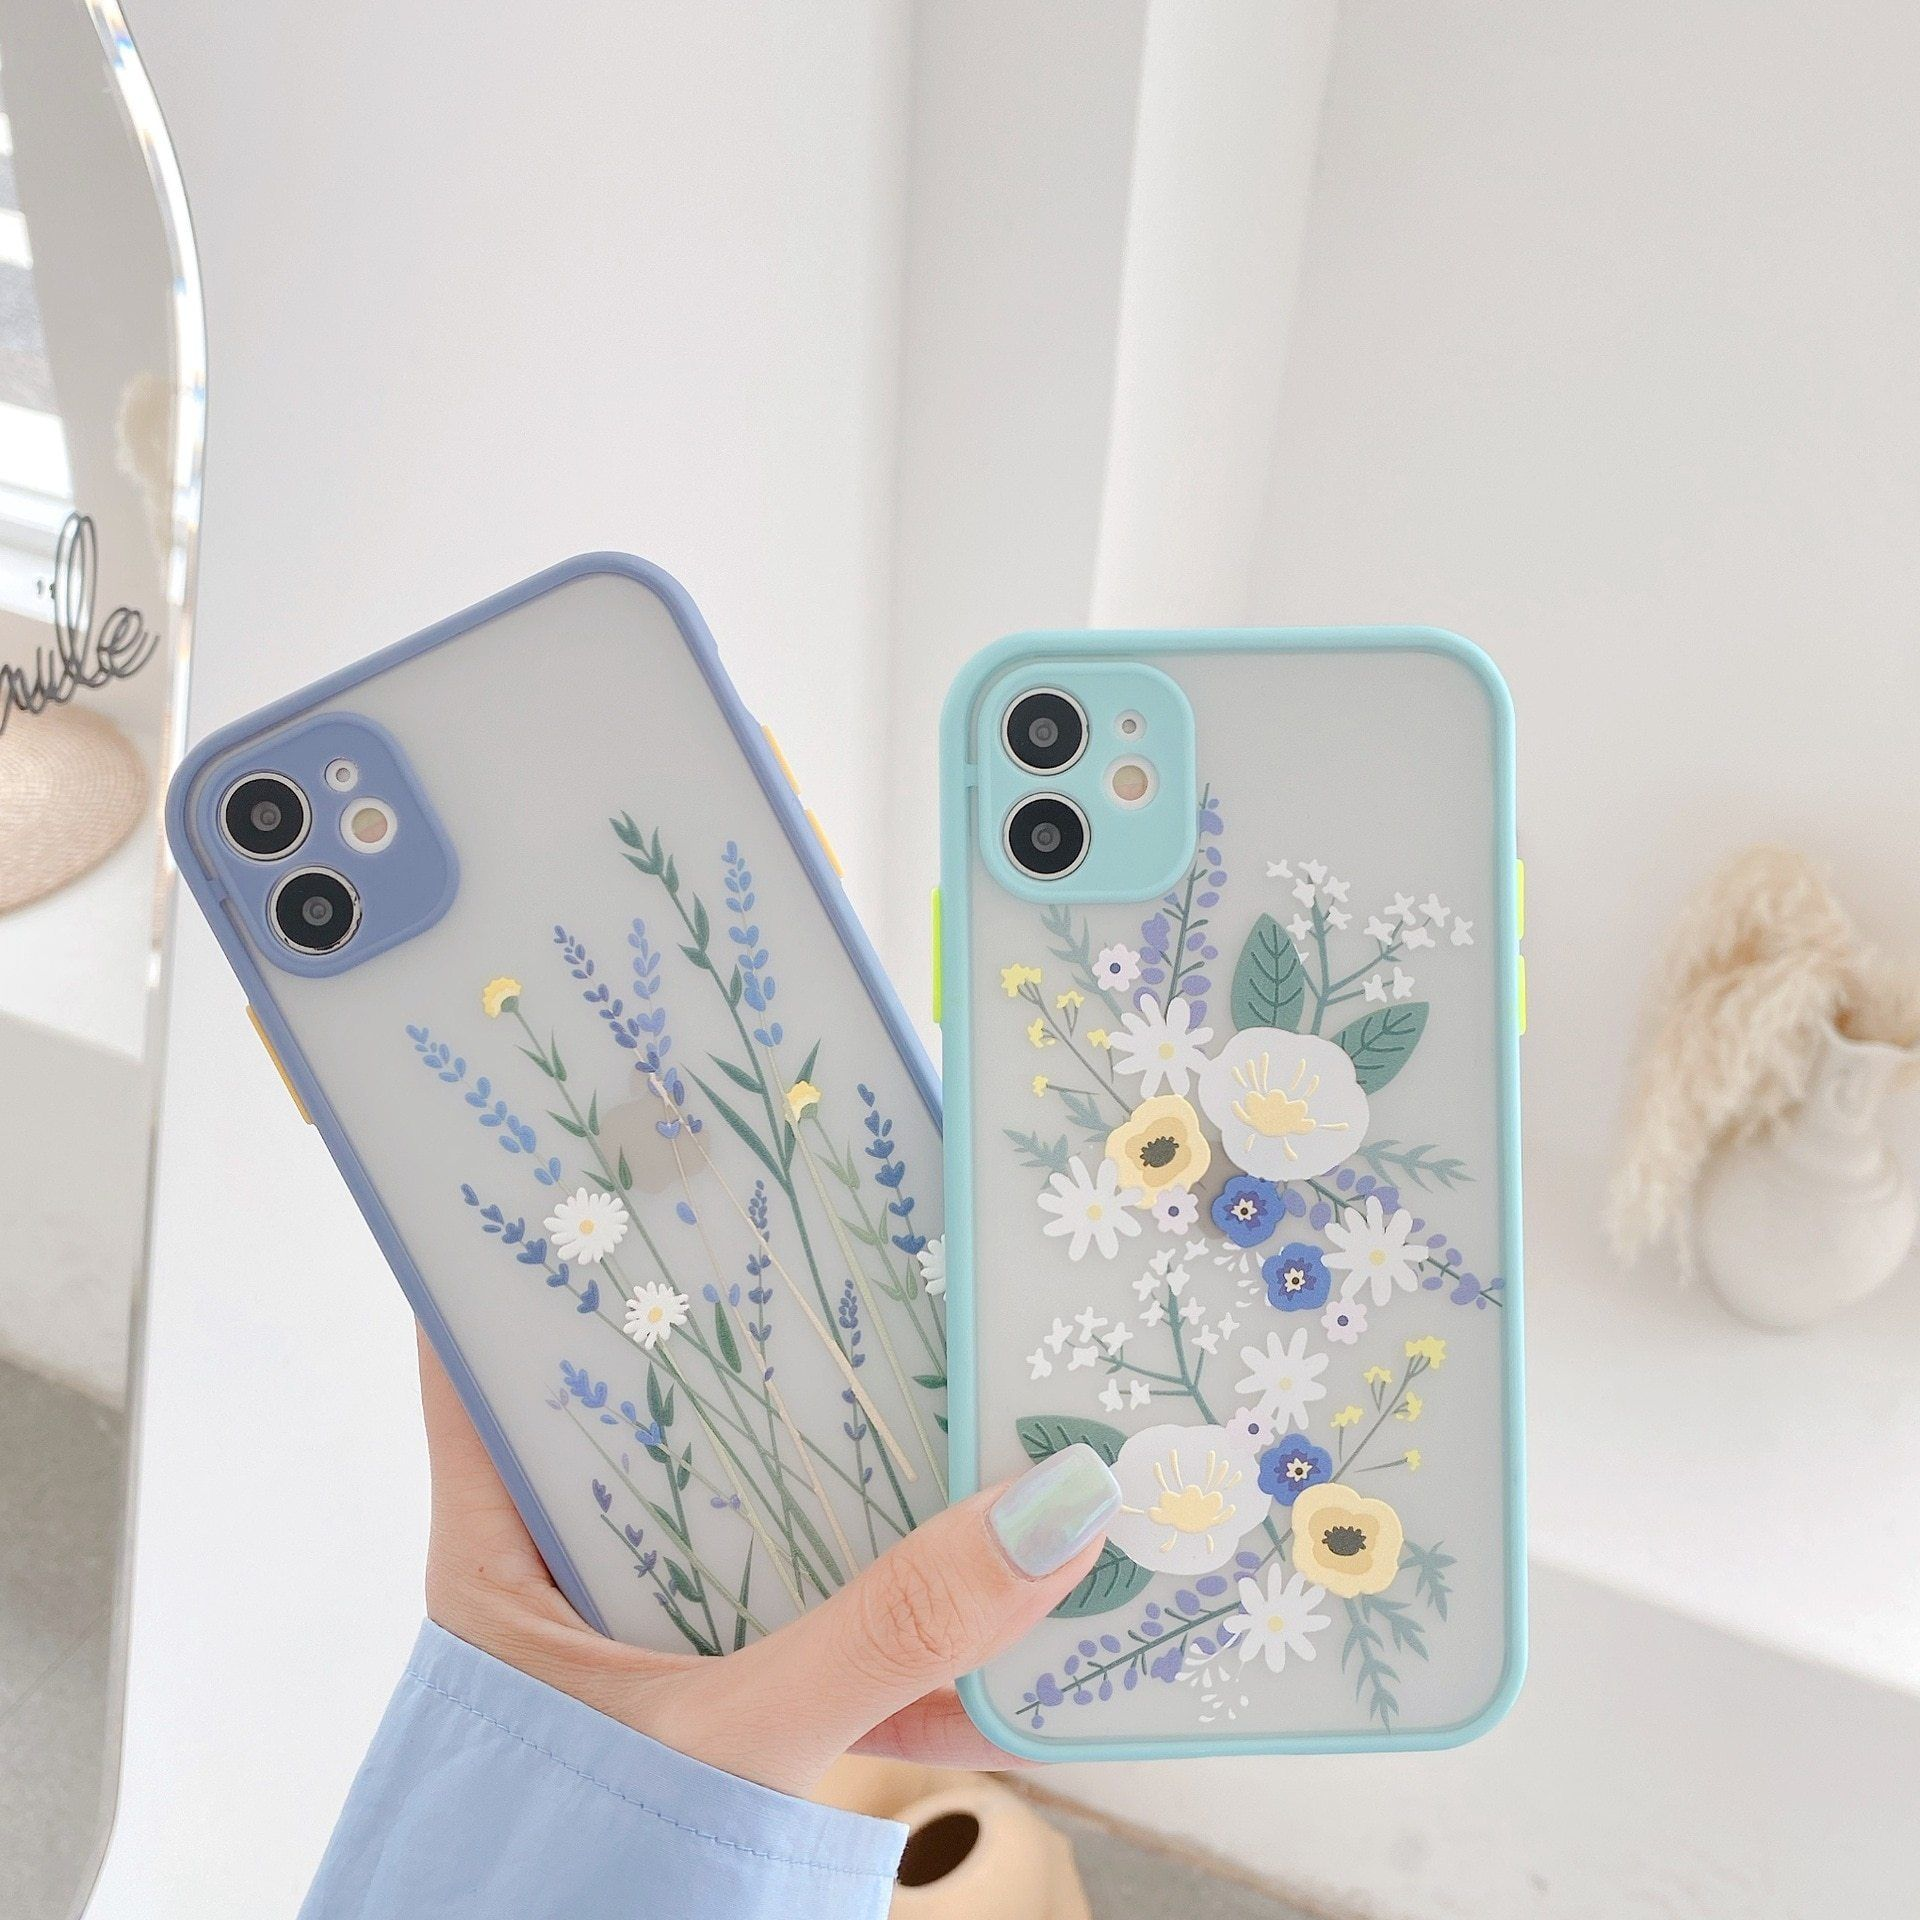 Floral Phone Case For Iphone Floral Phone Case Flower Iphone Cases Floral Iphone